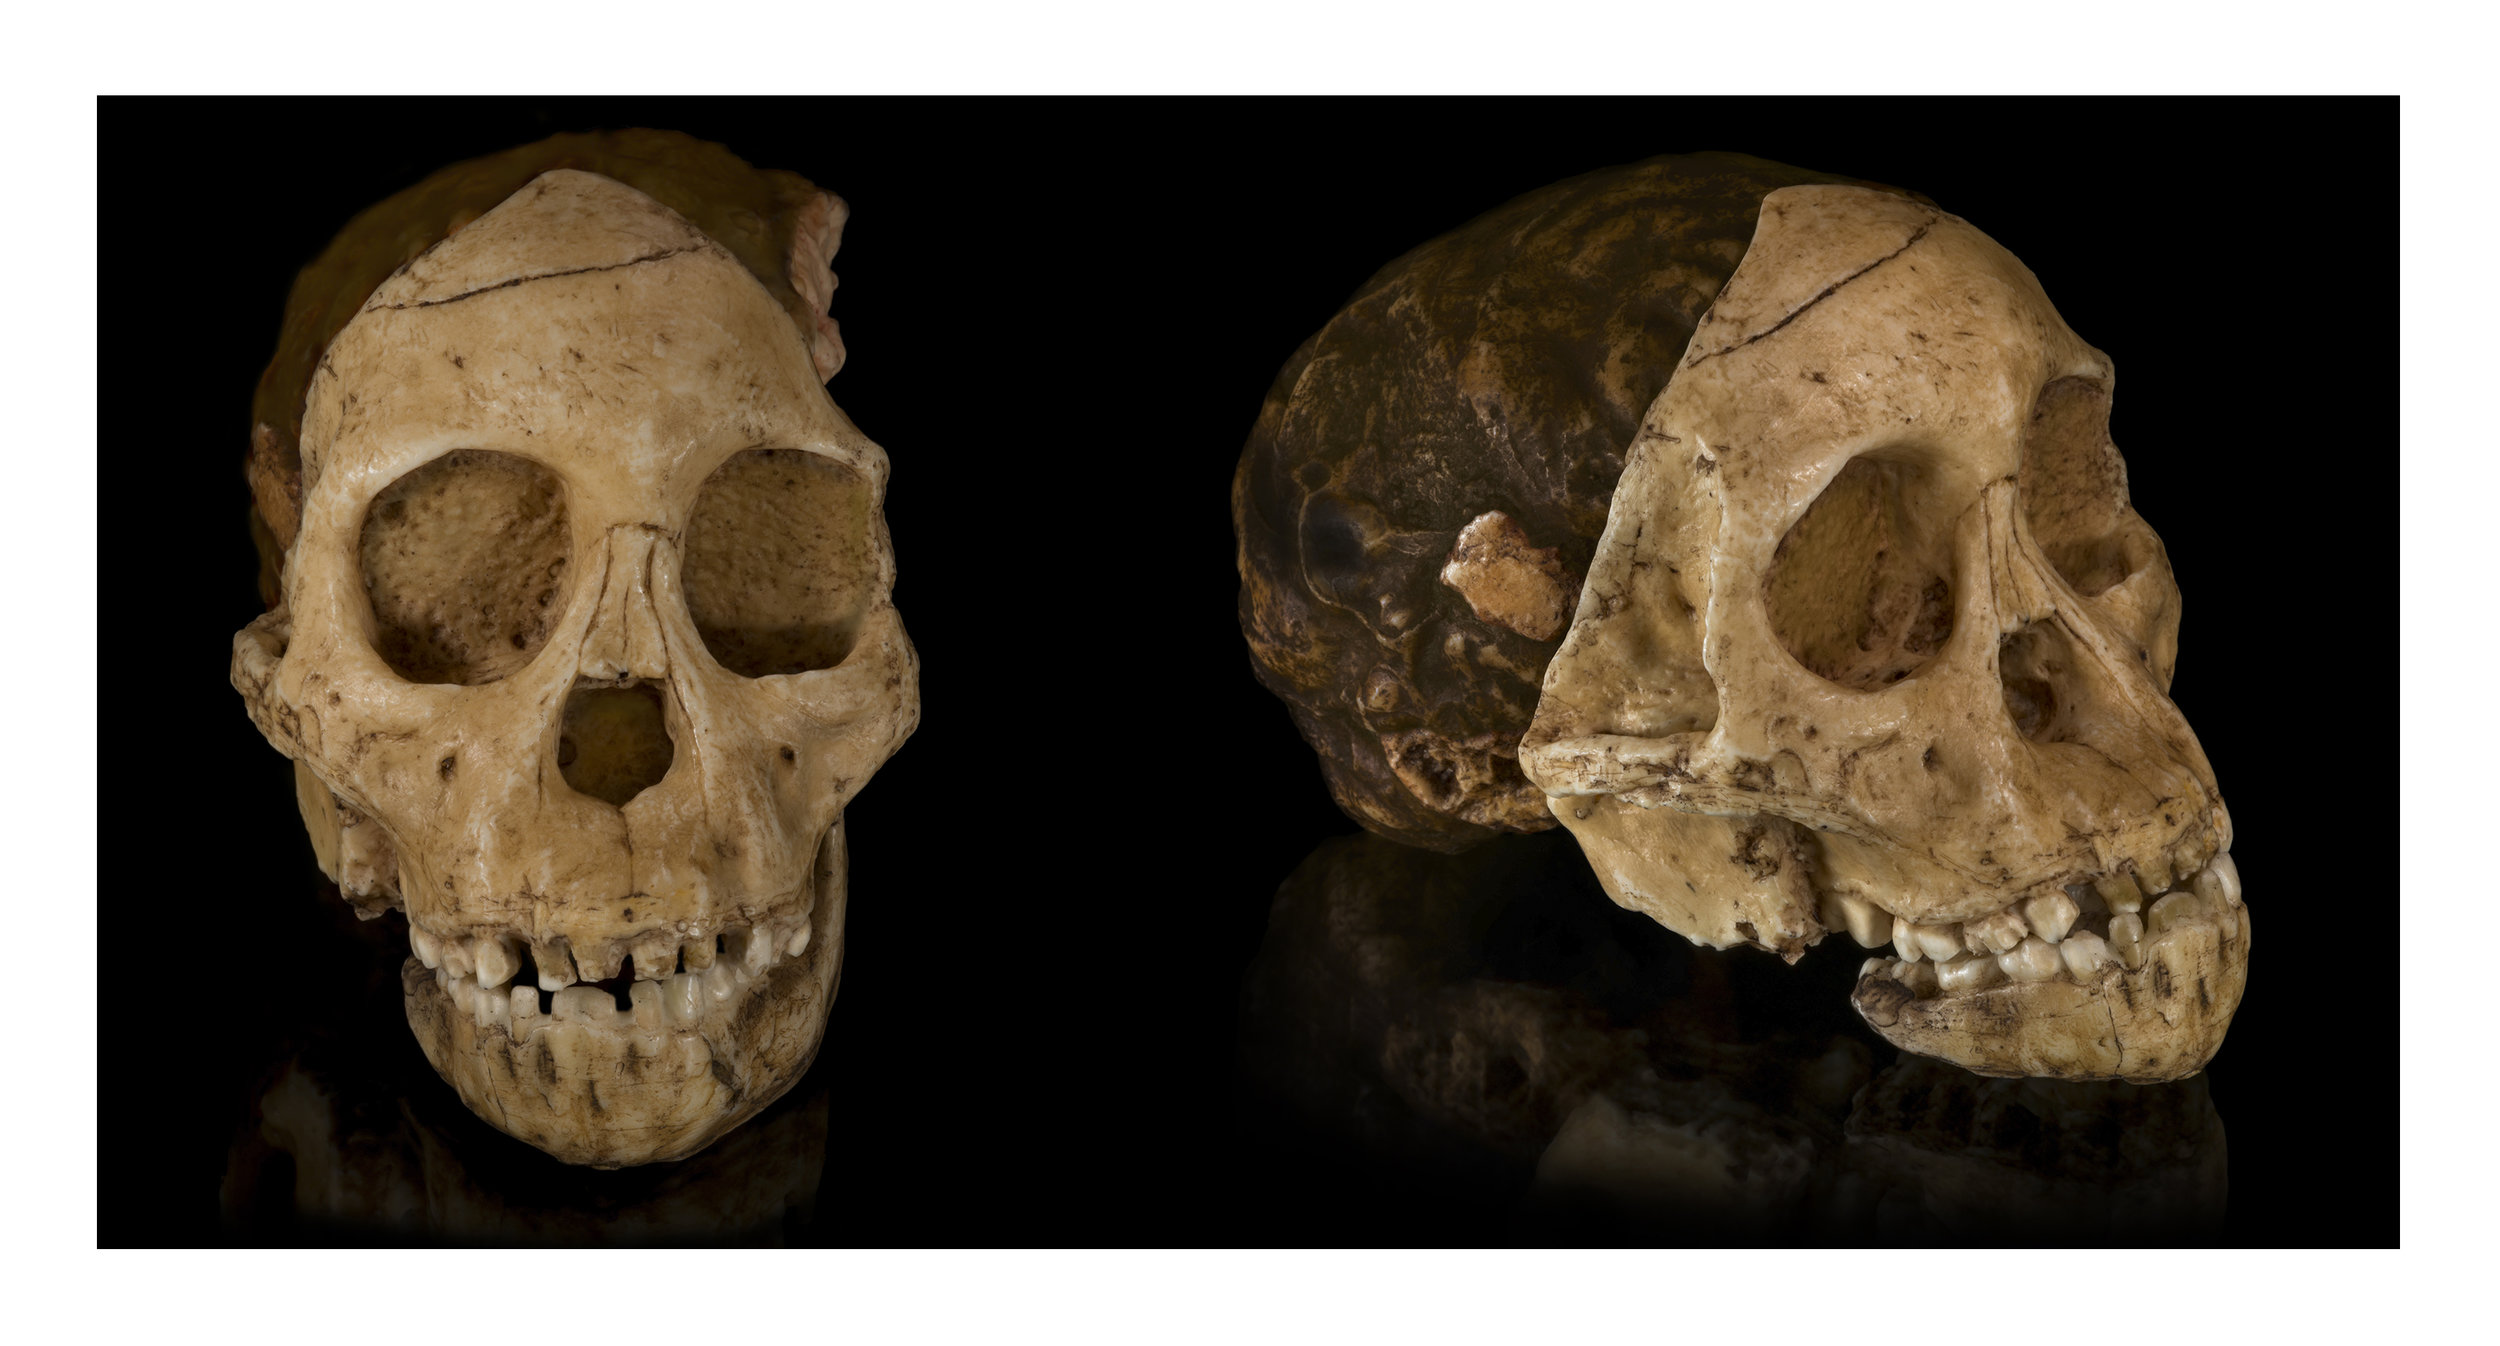 """A cast of the fossil skull known as the 'Taungs Baby,"""" or """"Taung Child,"""" shot from two different angles. Images from Wikimedia Commons."""